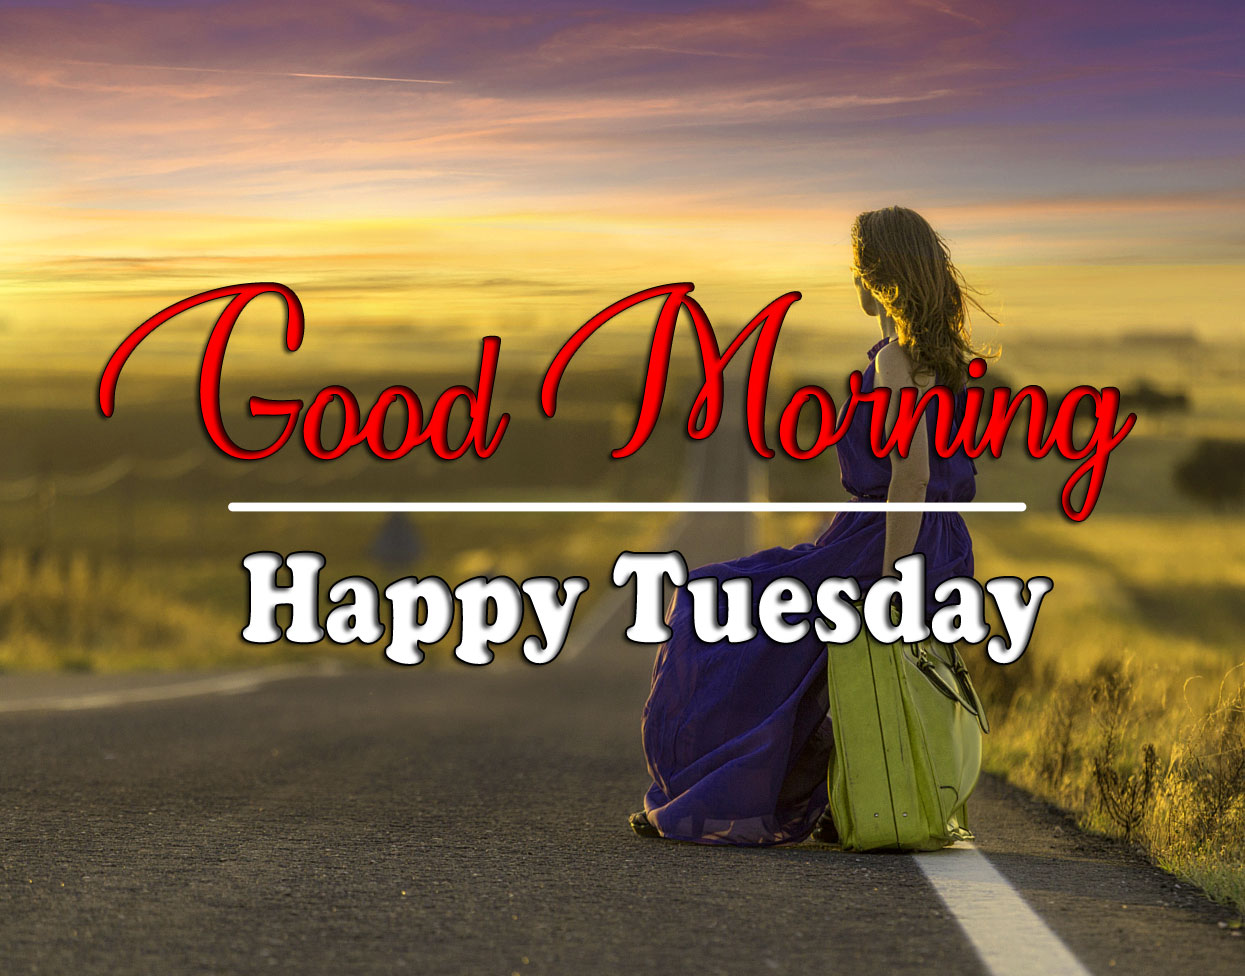 Latest Quality Tuesday Good morning Images